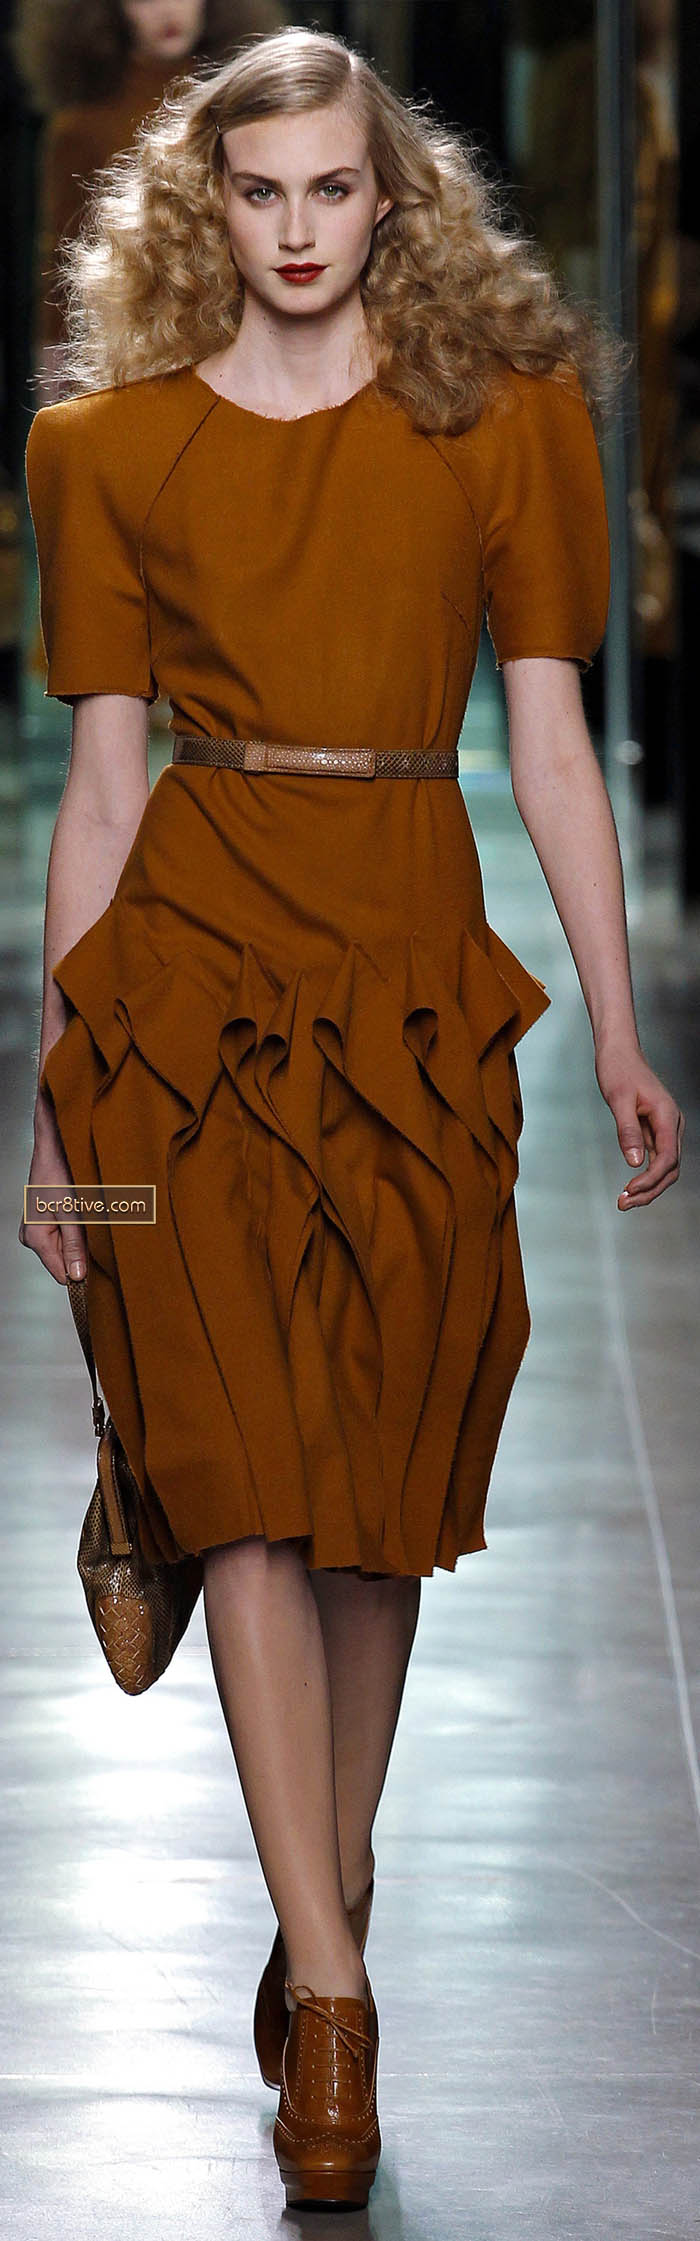 Bottega Veneta Fall Winter 2013-14